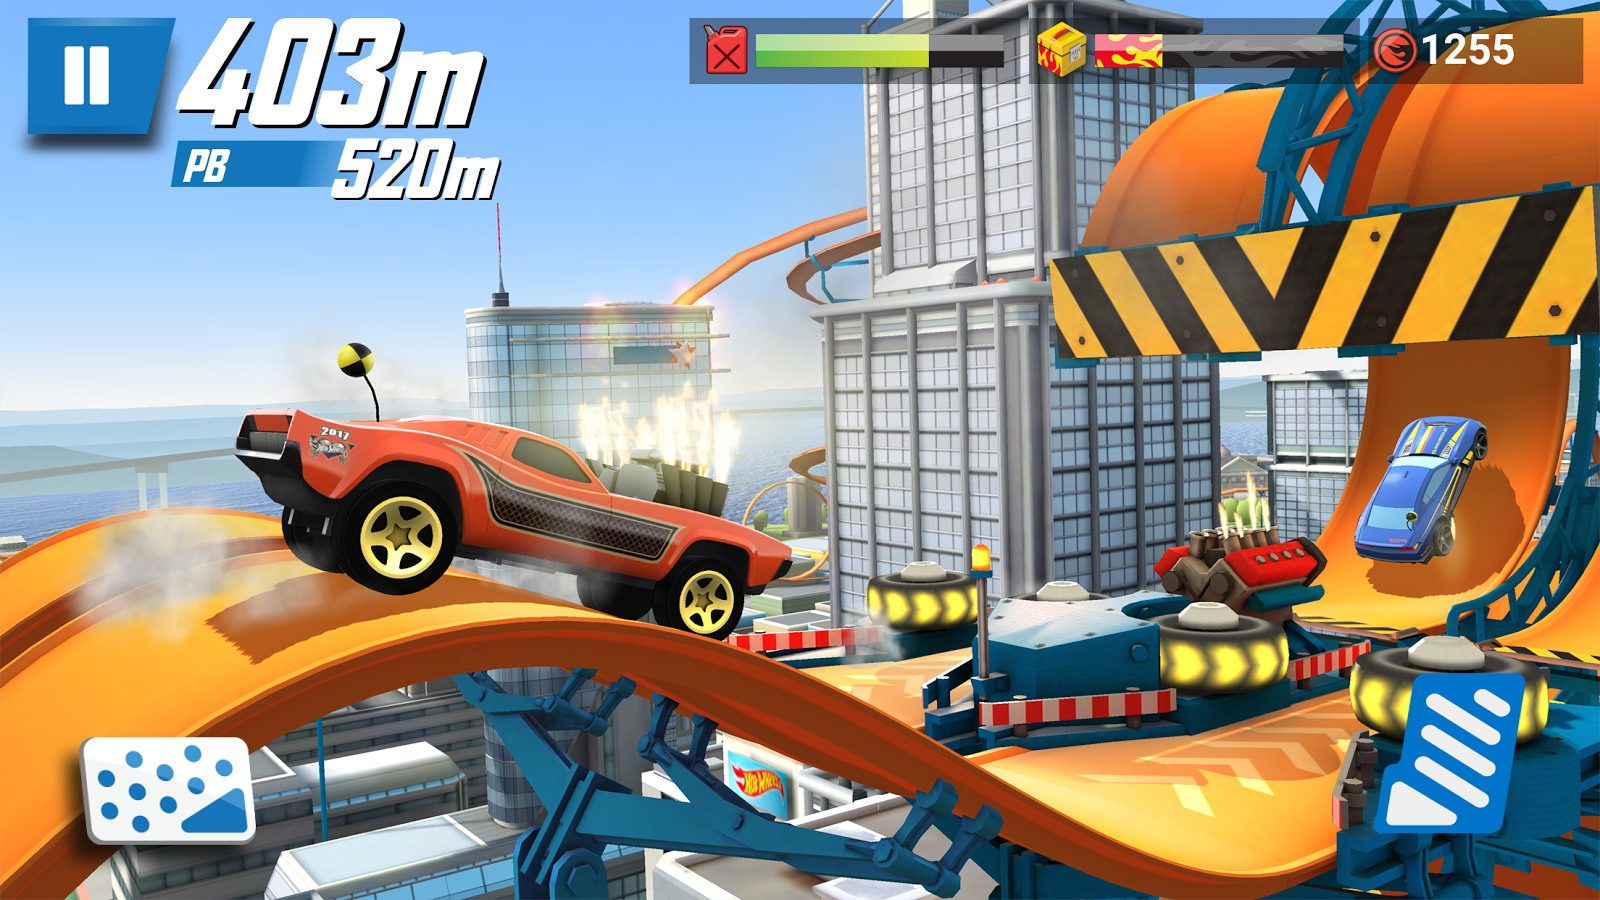 Скачать hot wheels: turbo racing android games apk 4513723.